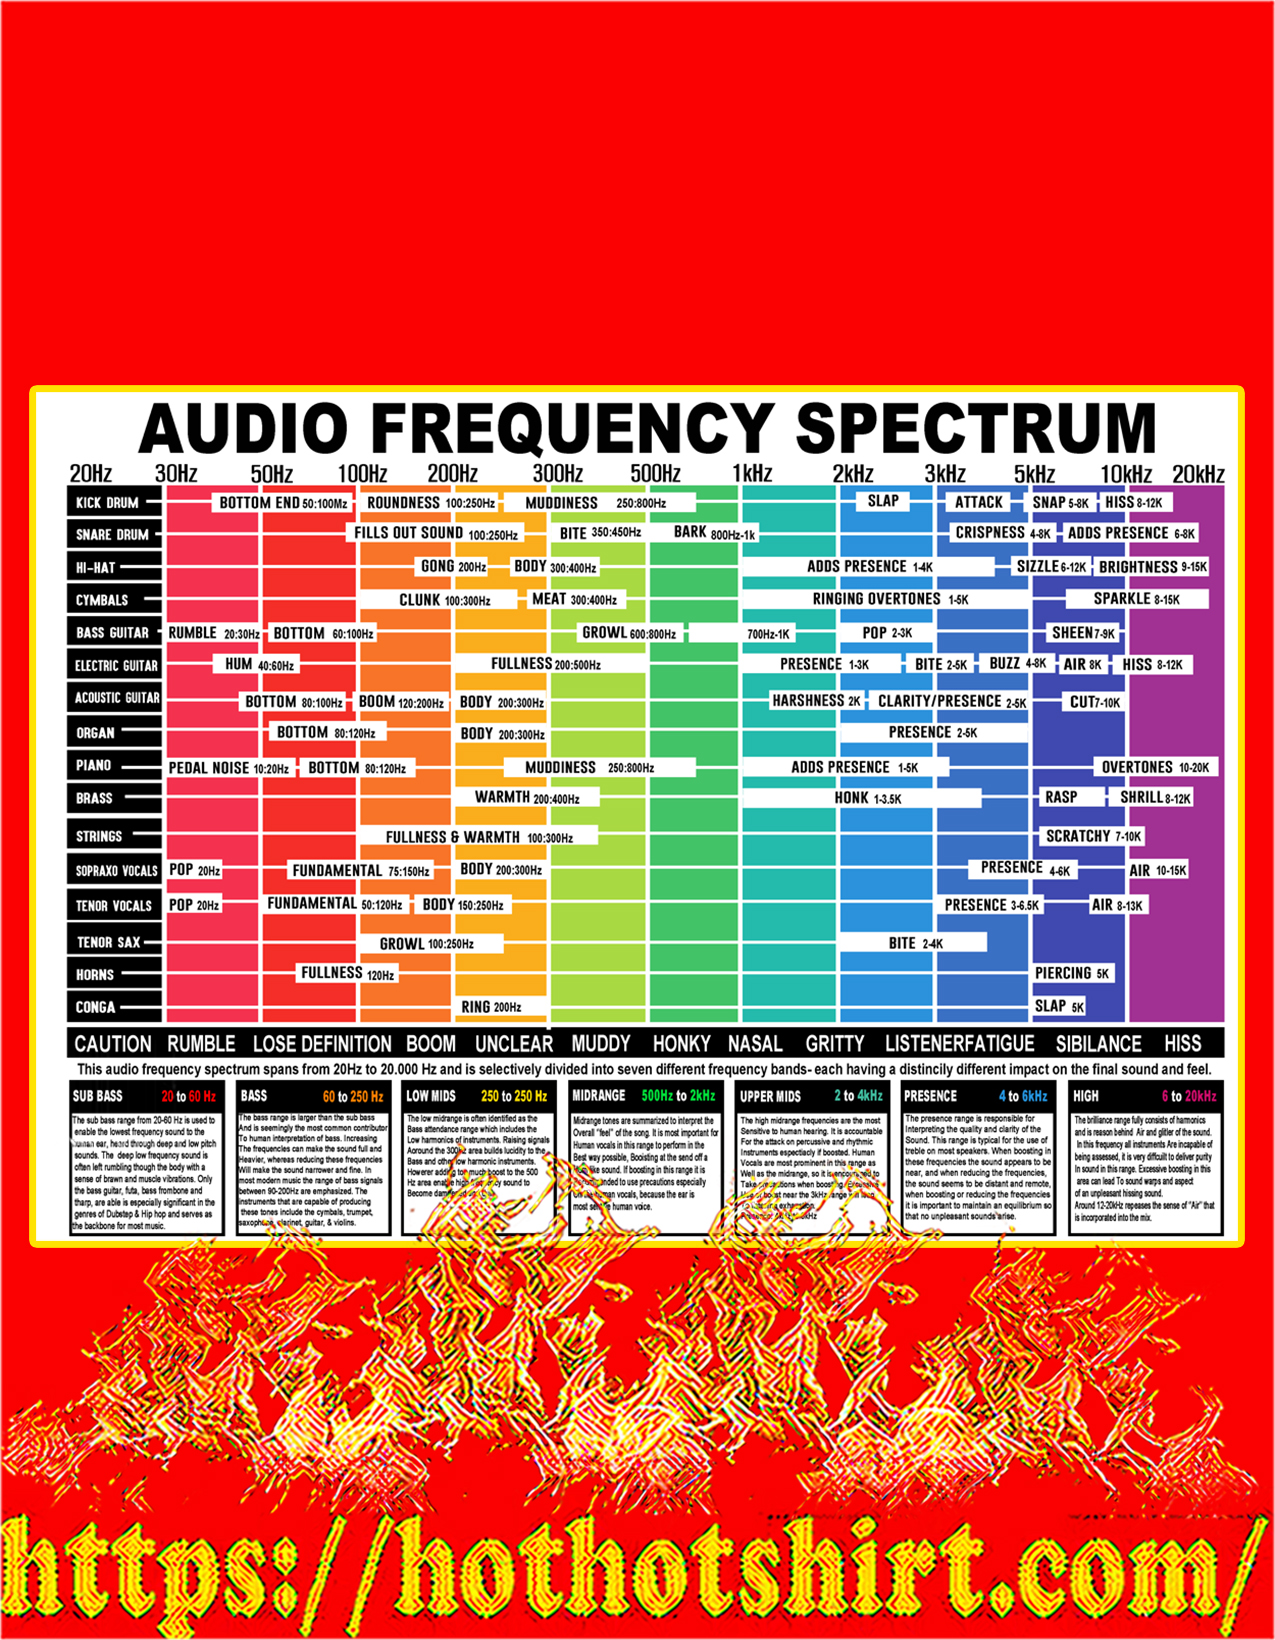 Audio frequency spectrum poster - A4